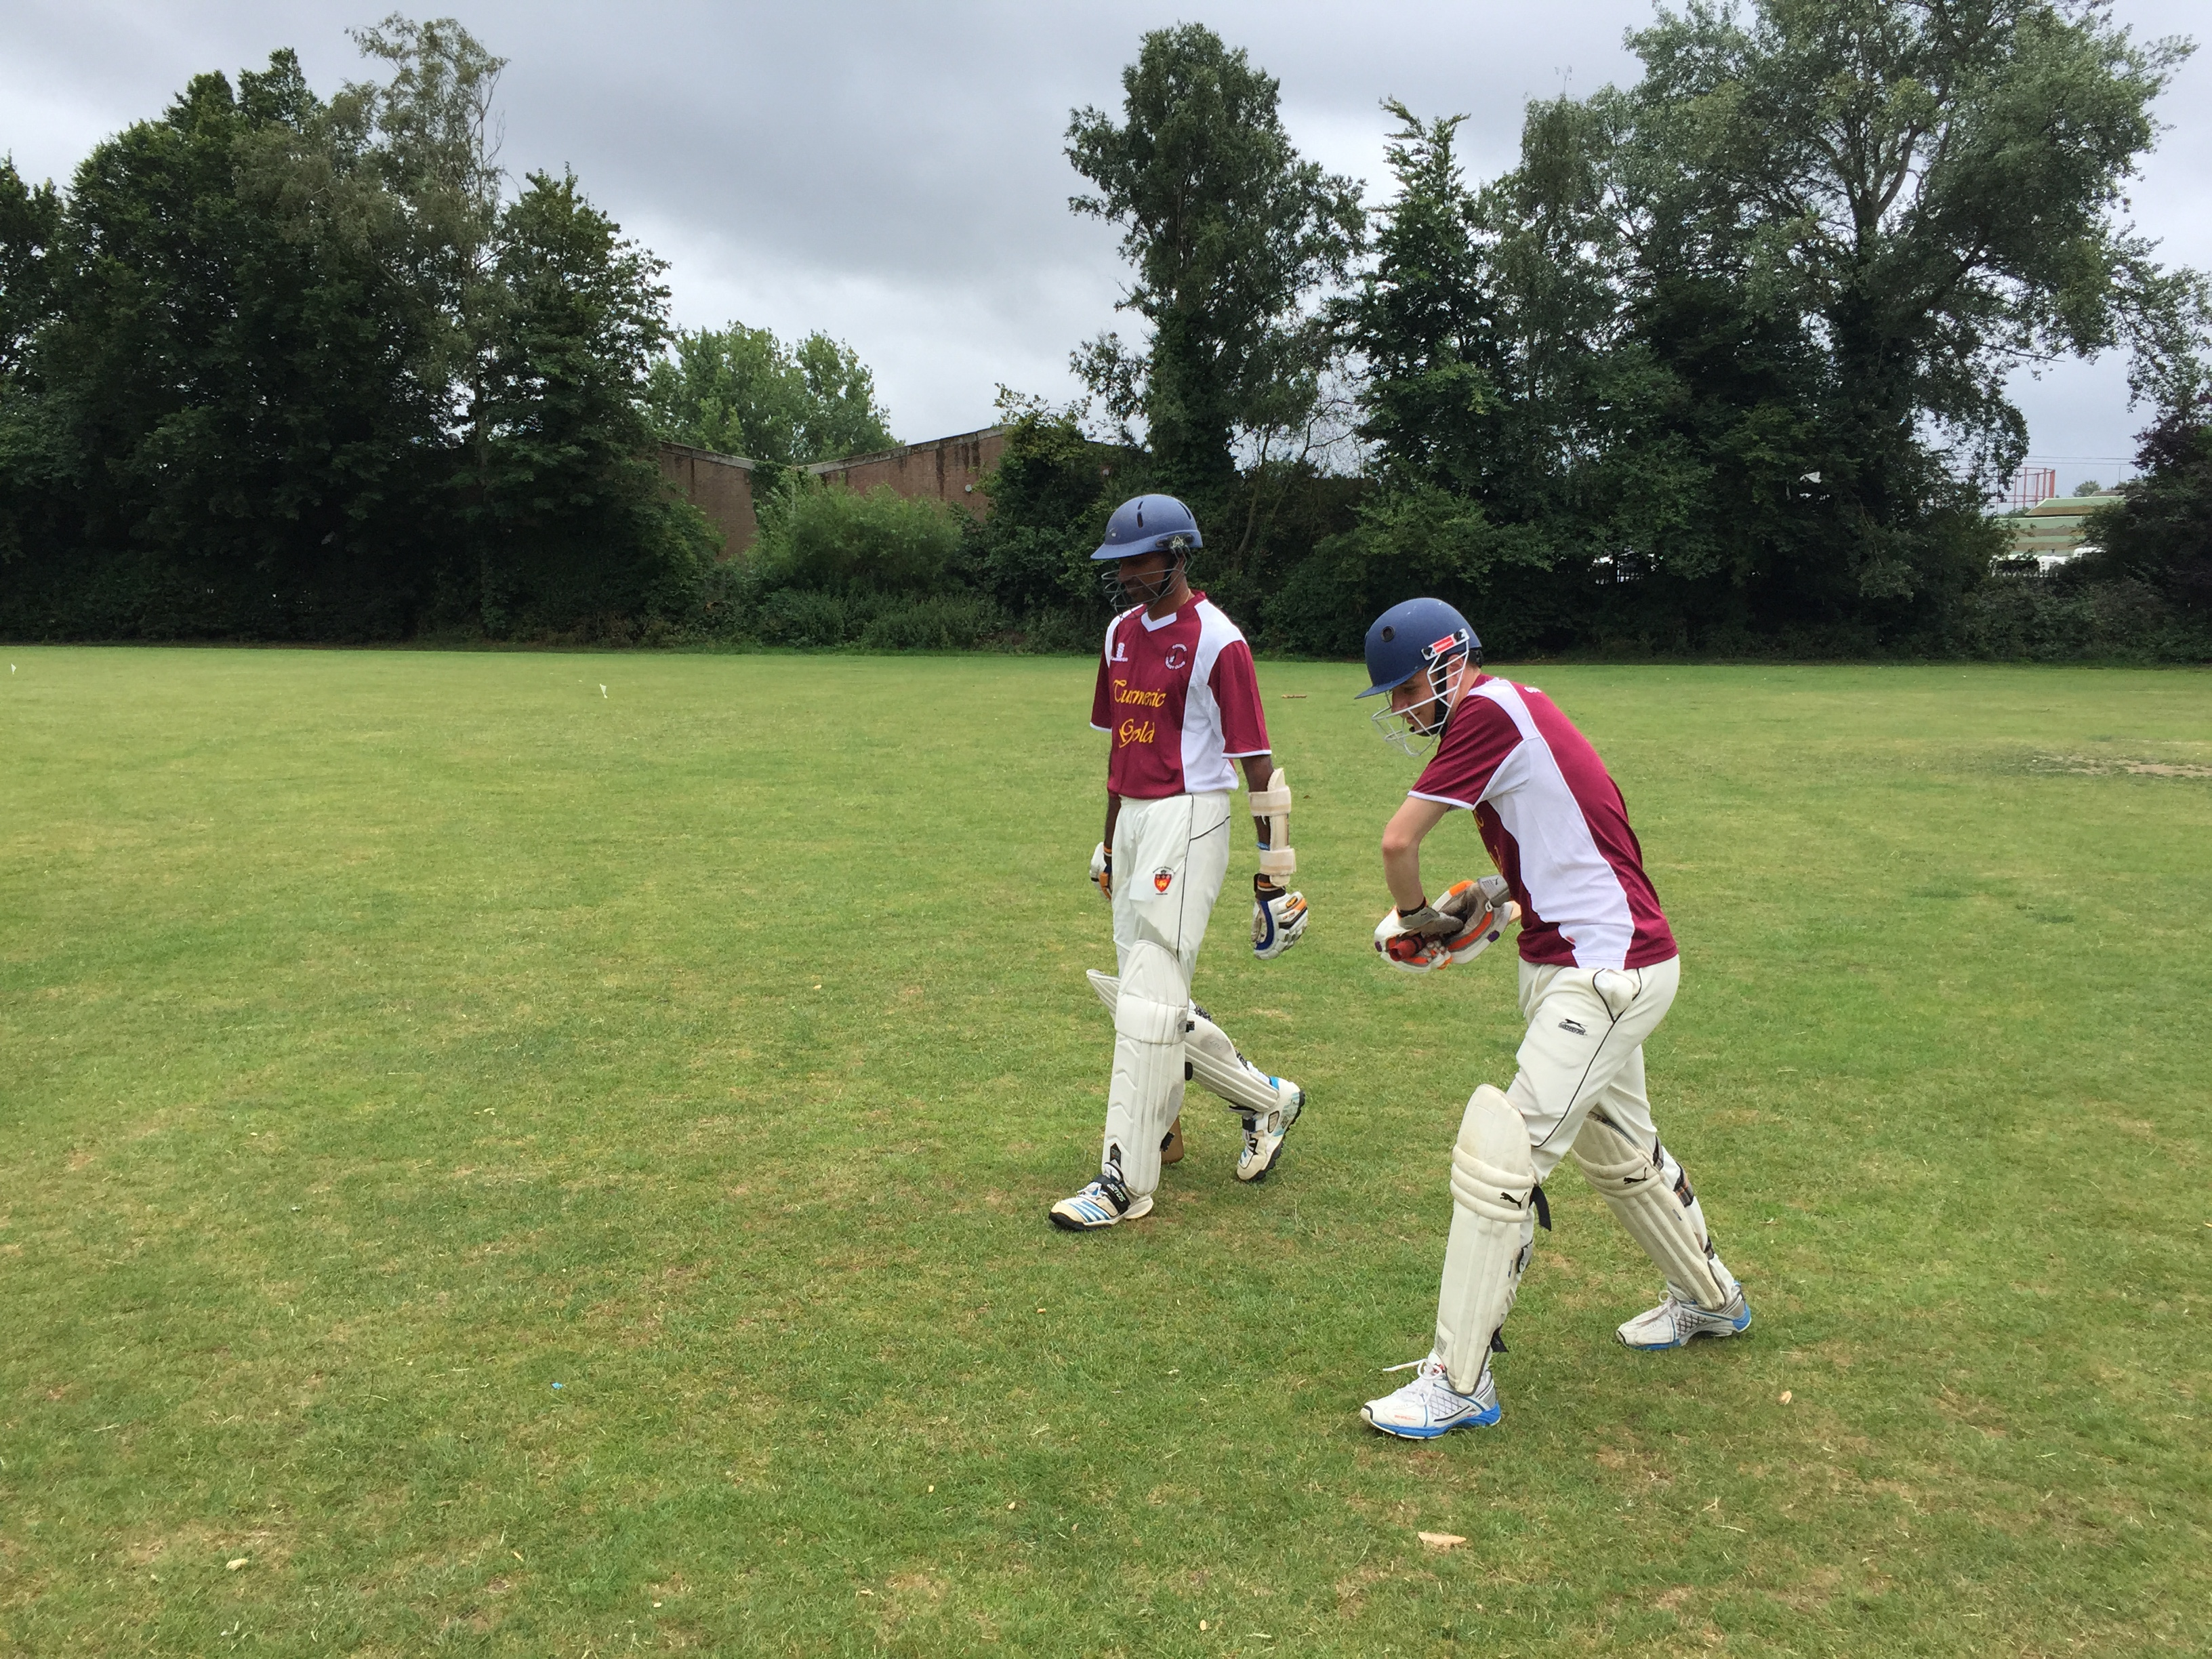 Partnership - Cowdrey CC - The home of cricket in Tonbridge